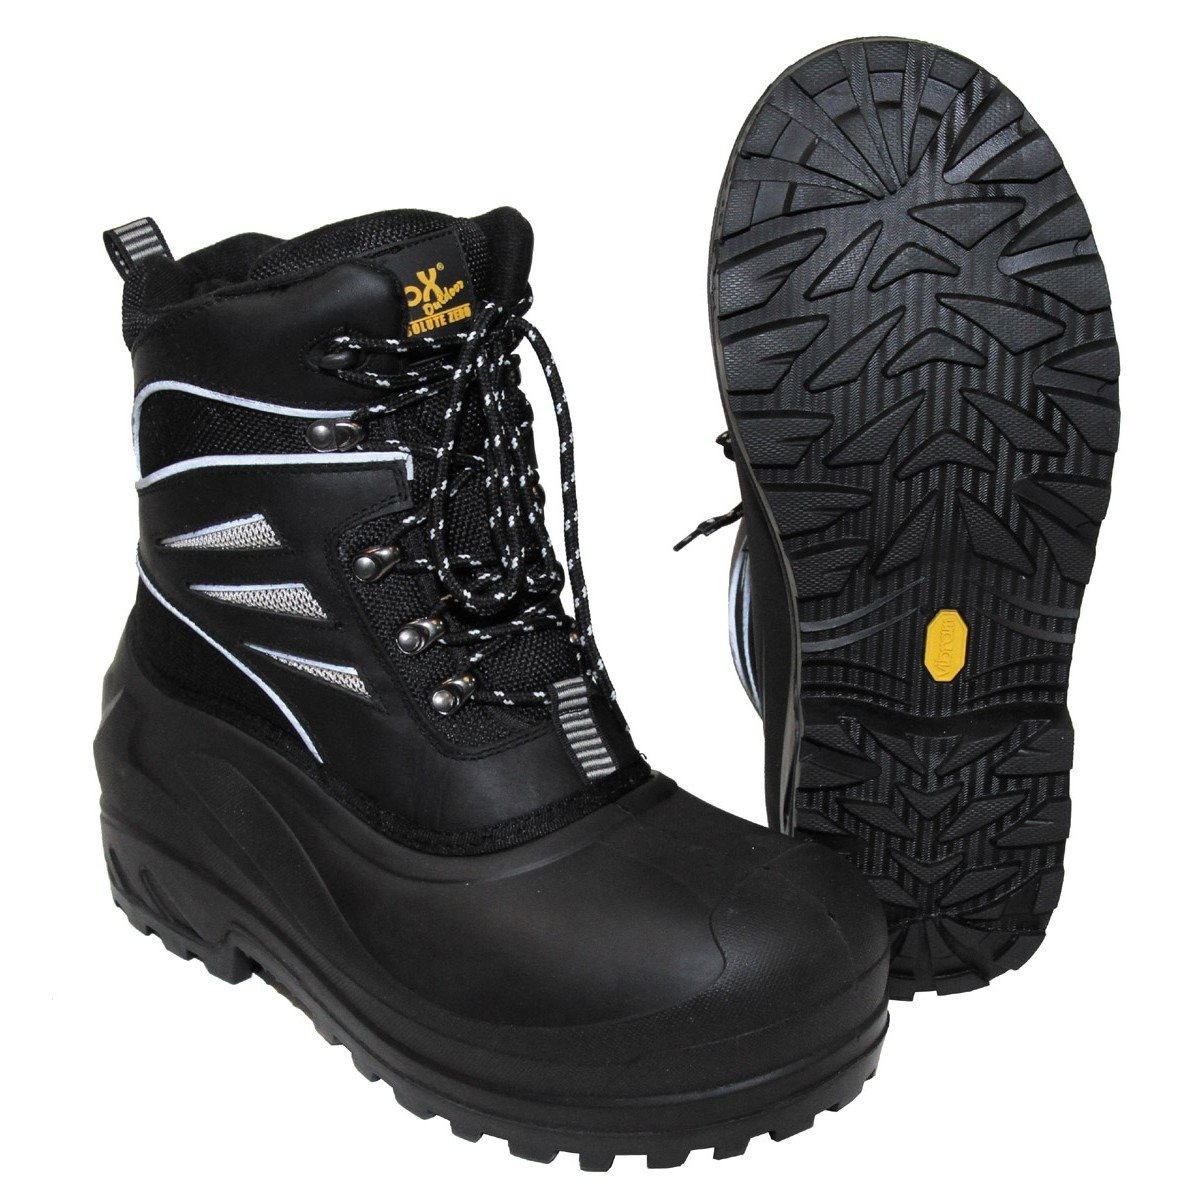 Thermal Boots,\